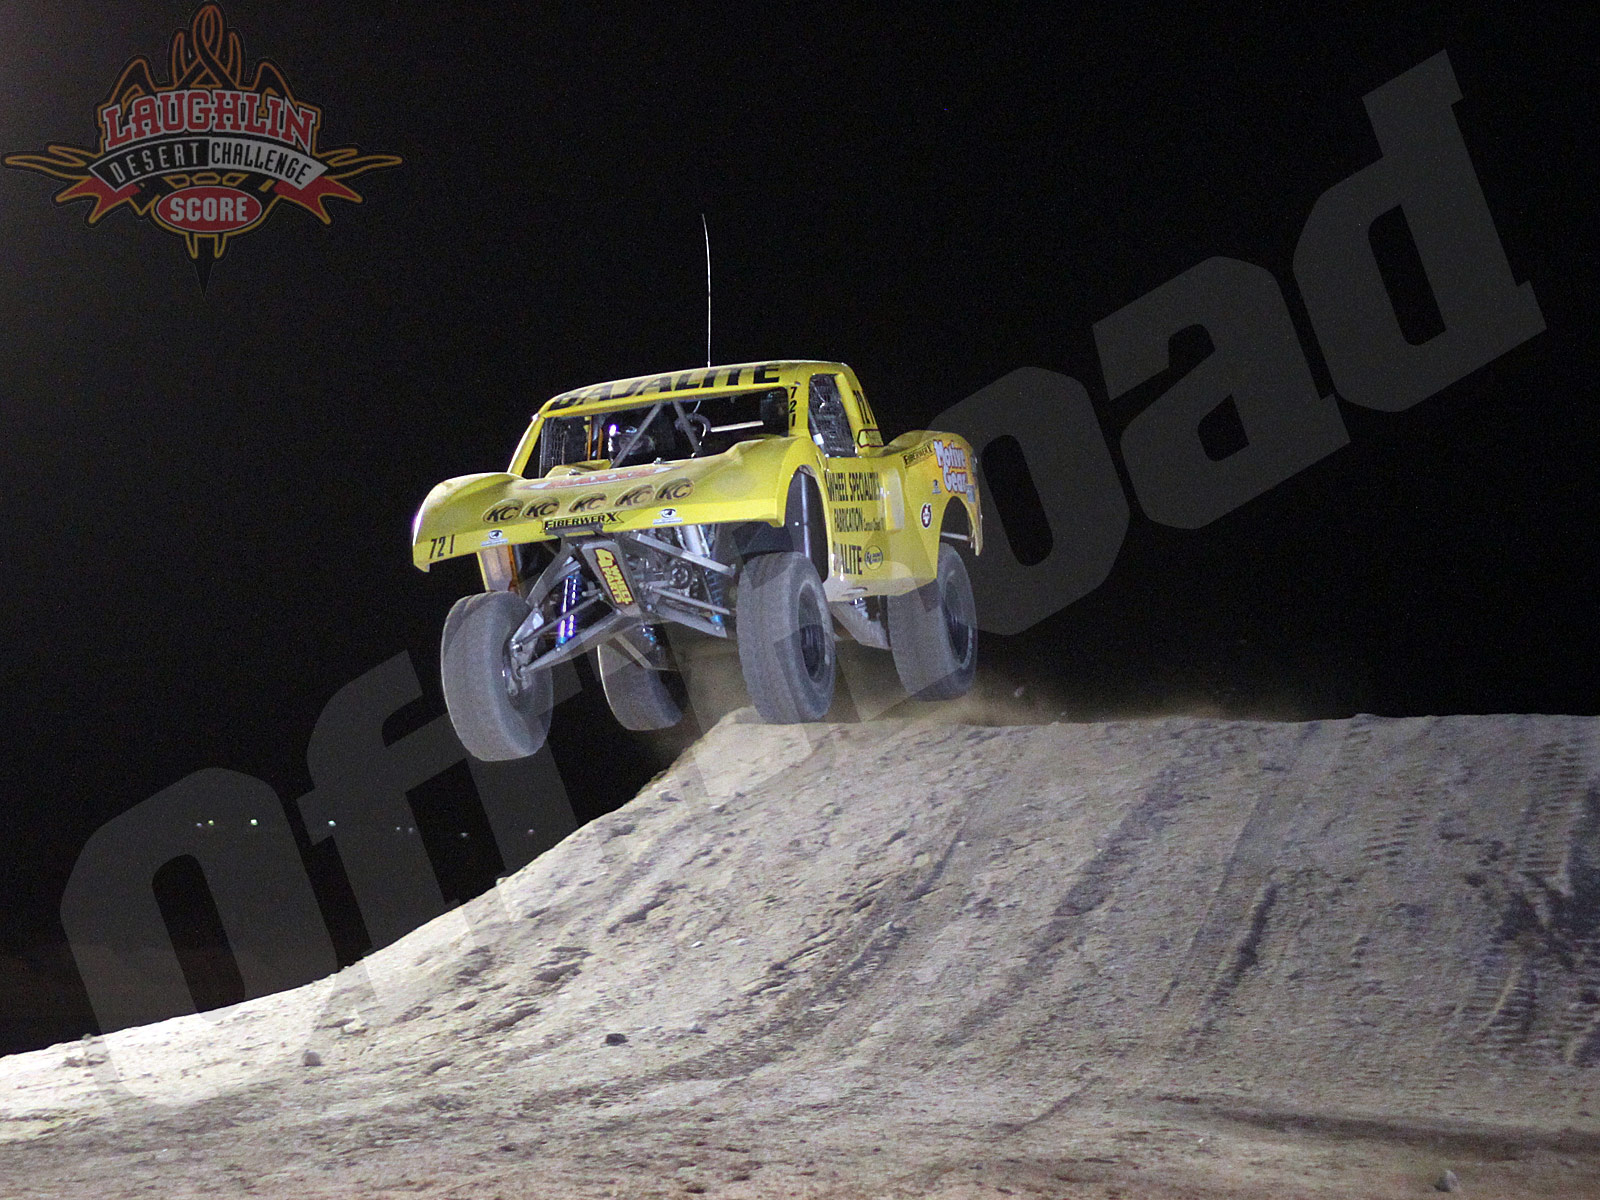 012611or 5212+2011 score laughlin desert challenge+laughlin leap